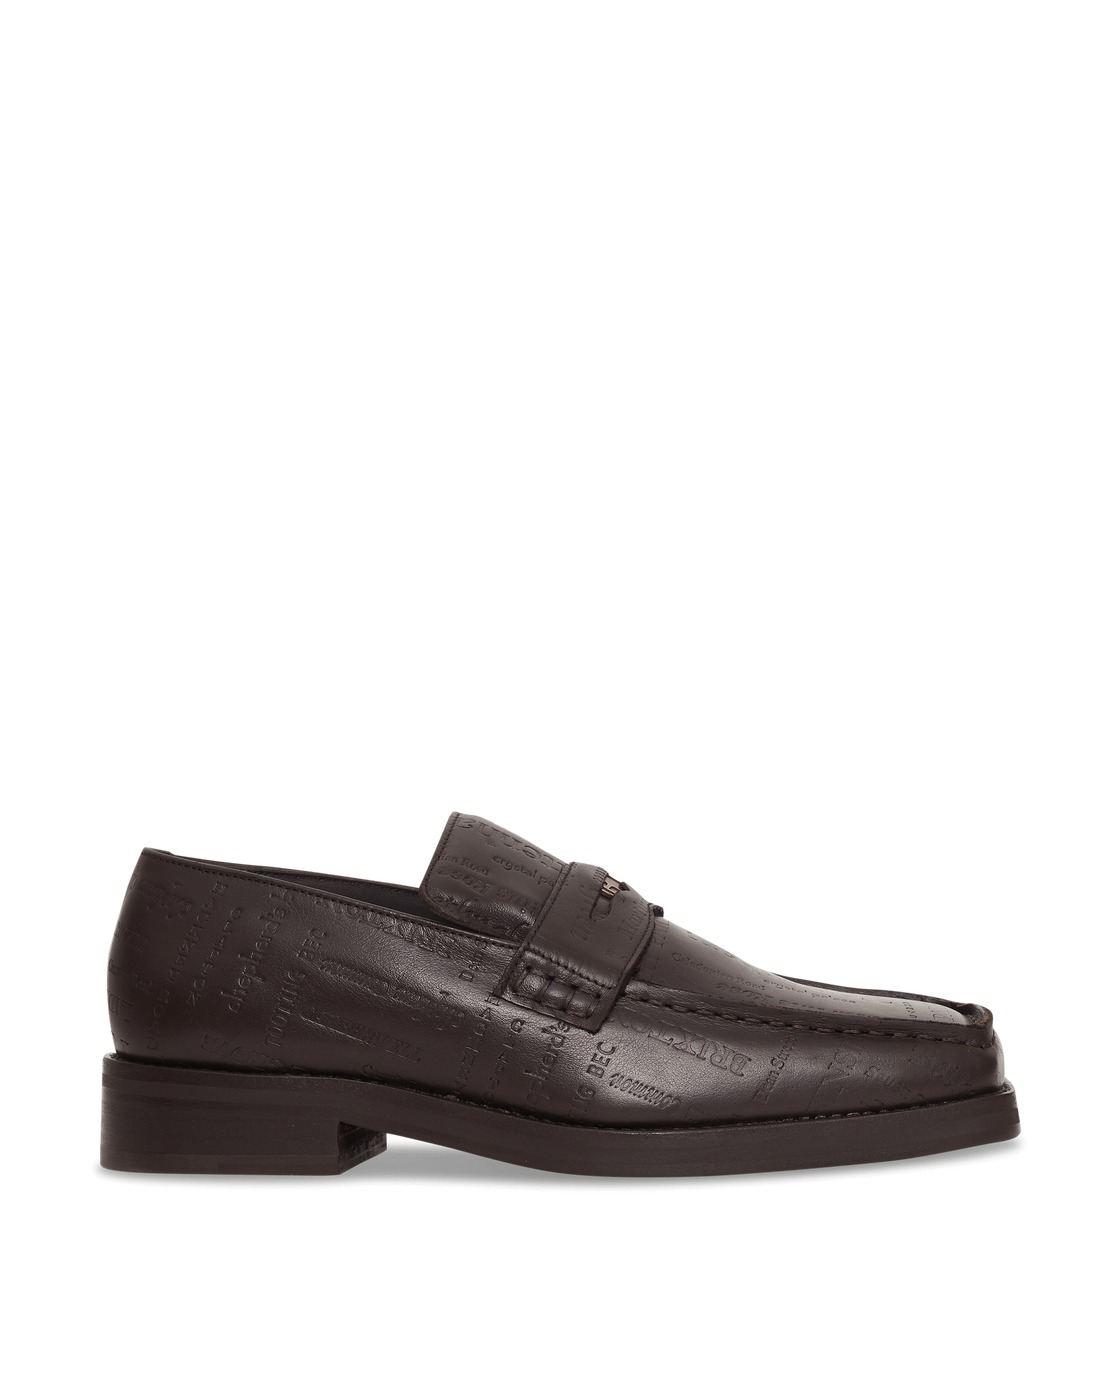 Martine Rose Roxy Embossed Leather Loafers Brown/Brown